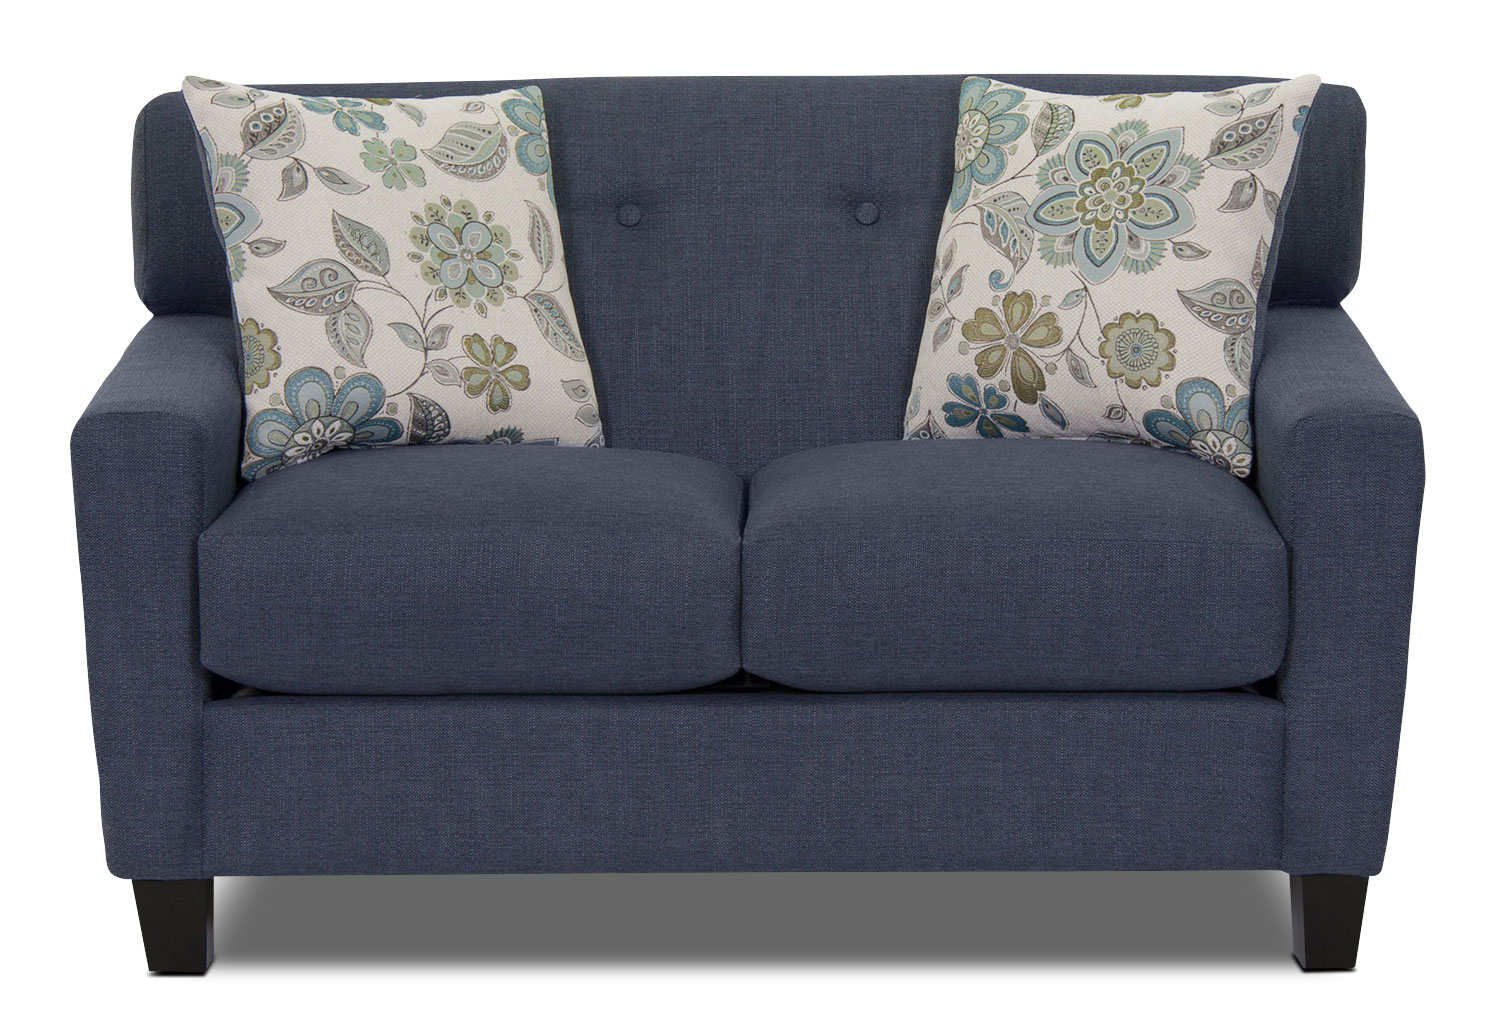 Loveseats | The Brick - Aubrey Linen-Look Fabric Loveseat - Indigo